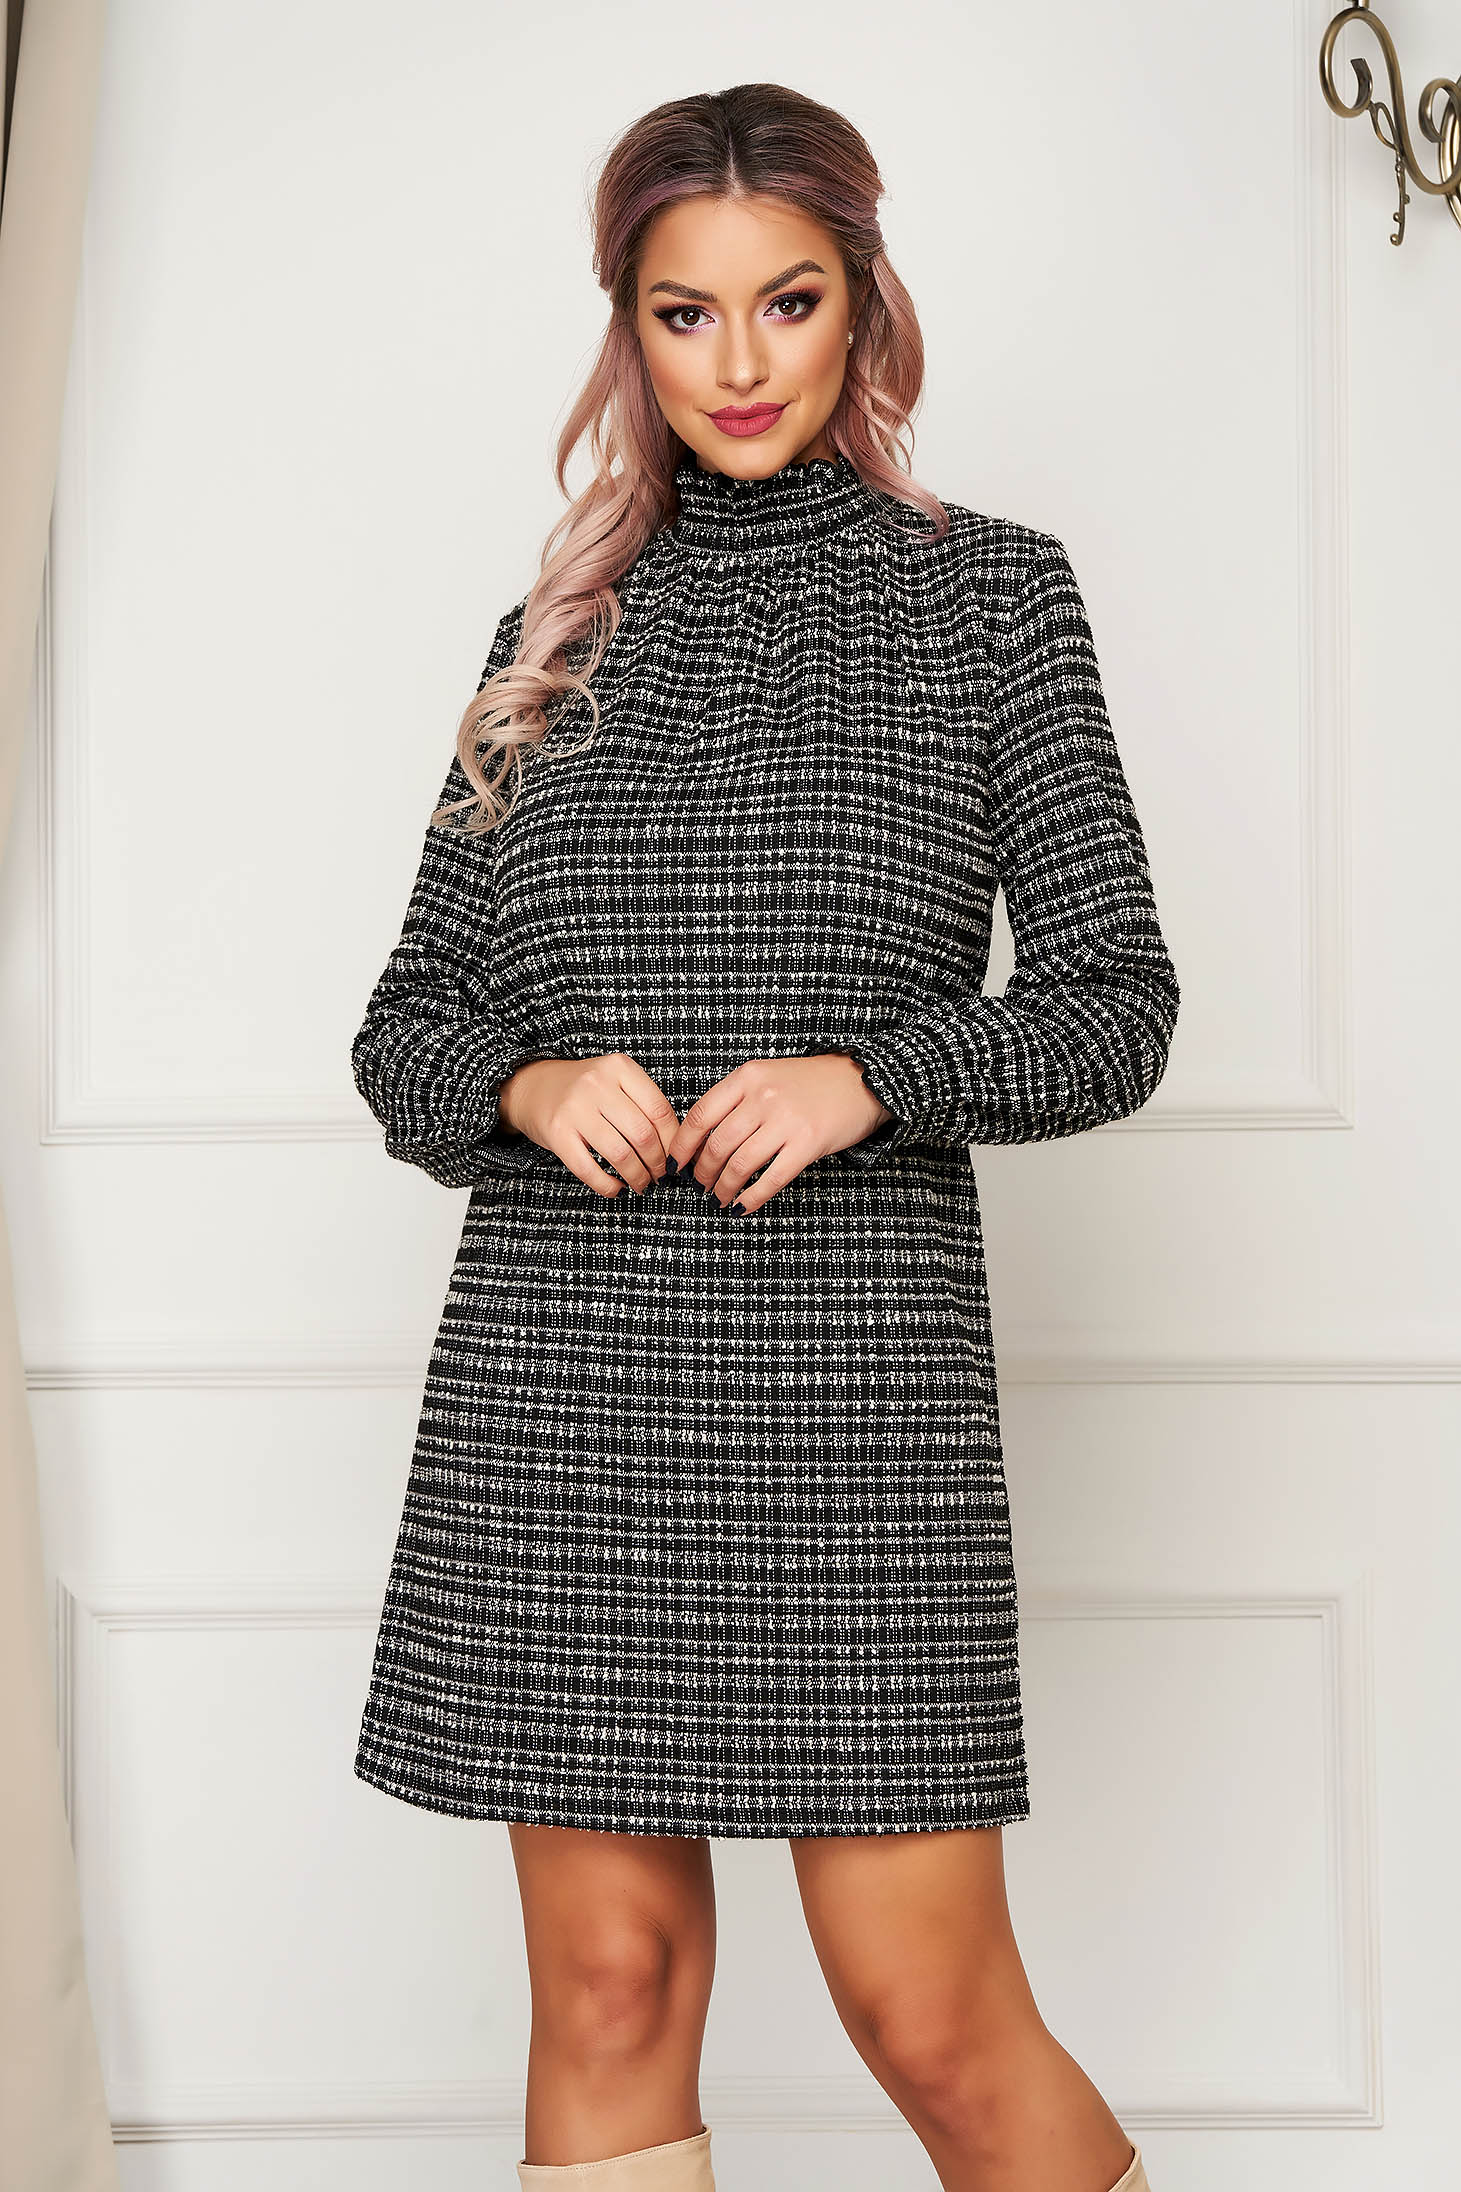 Black dress short cut daily with turtle neck long sleeved